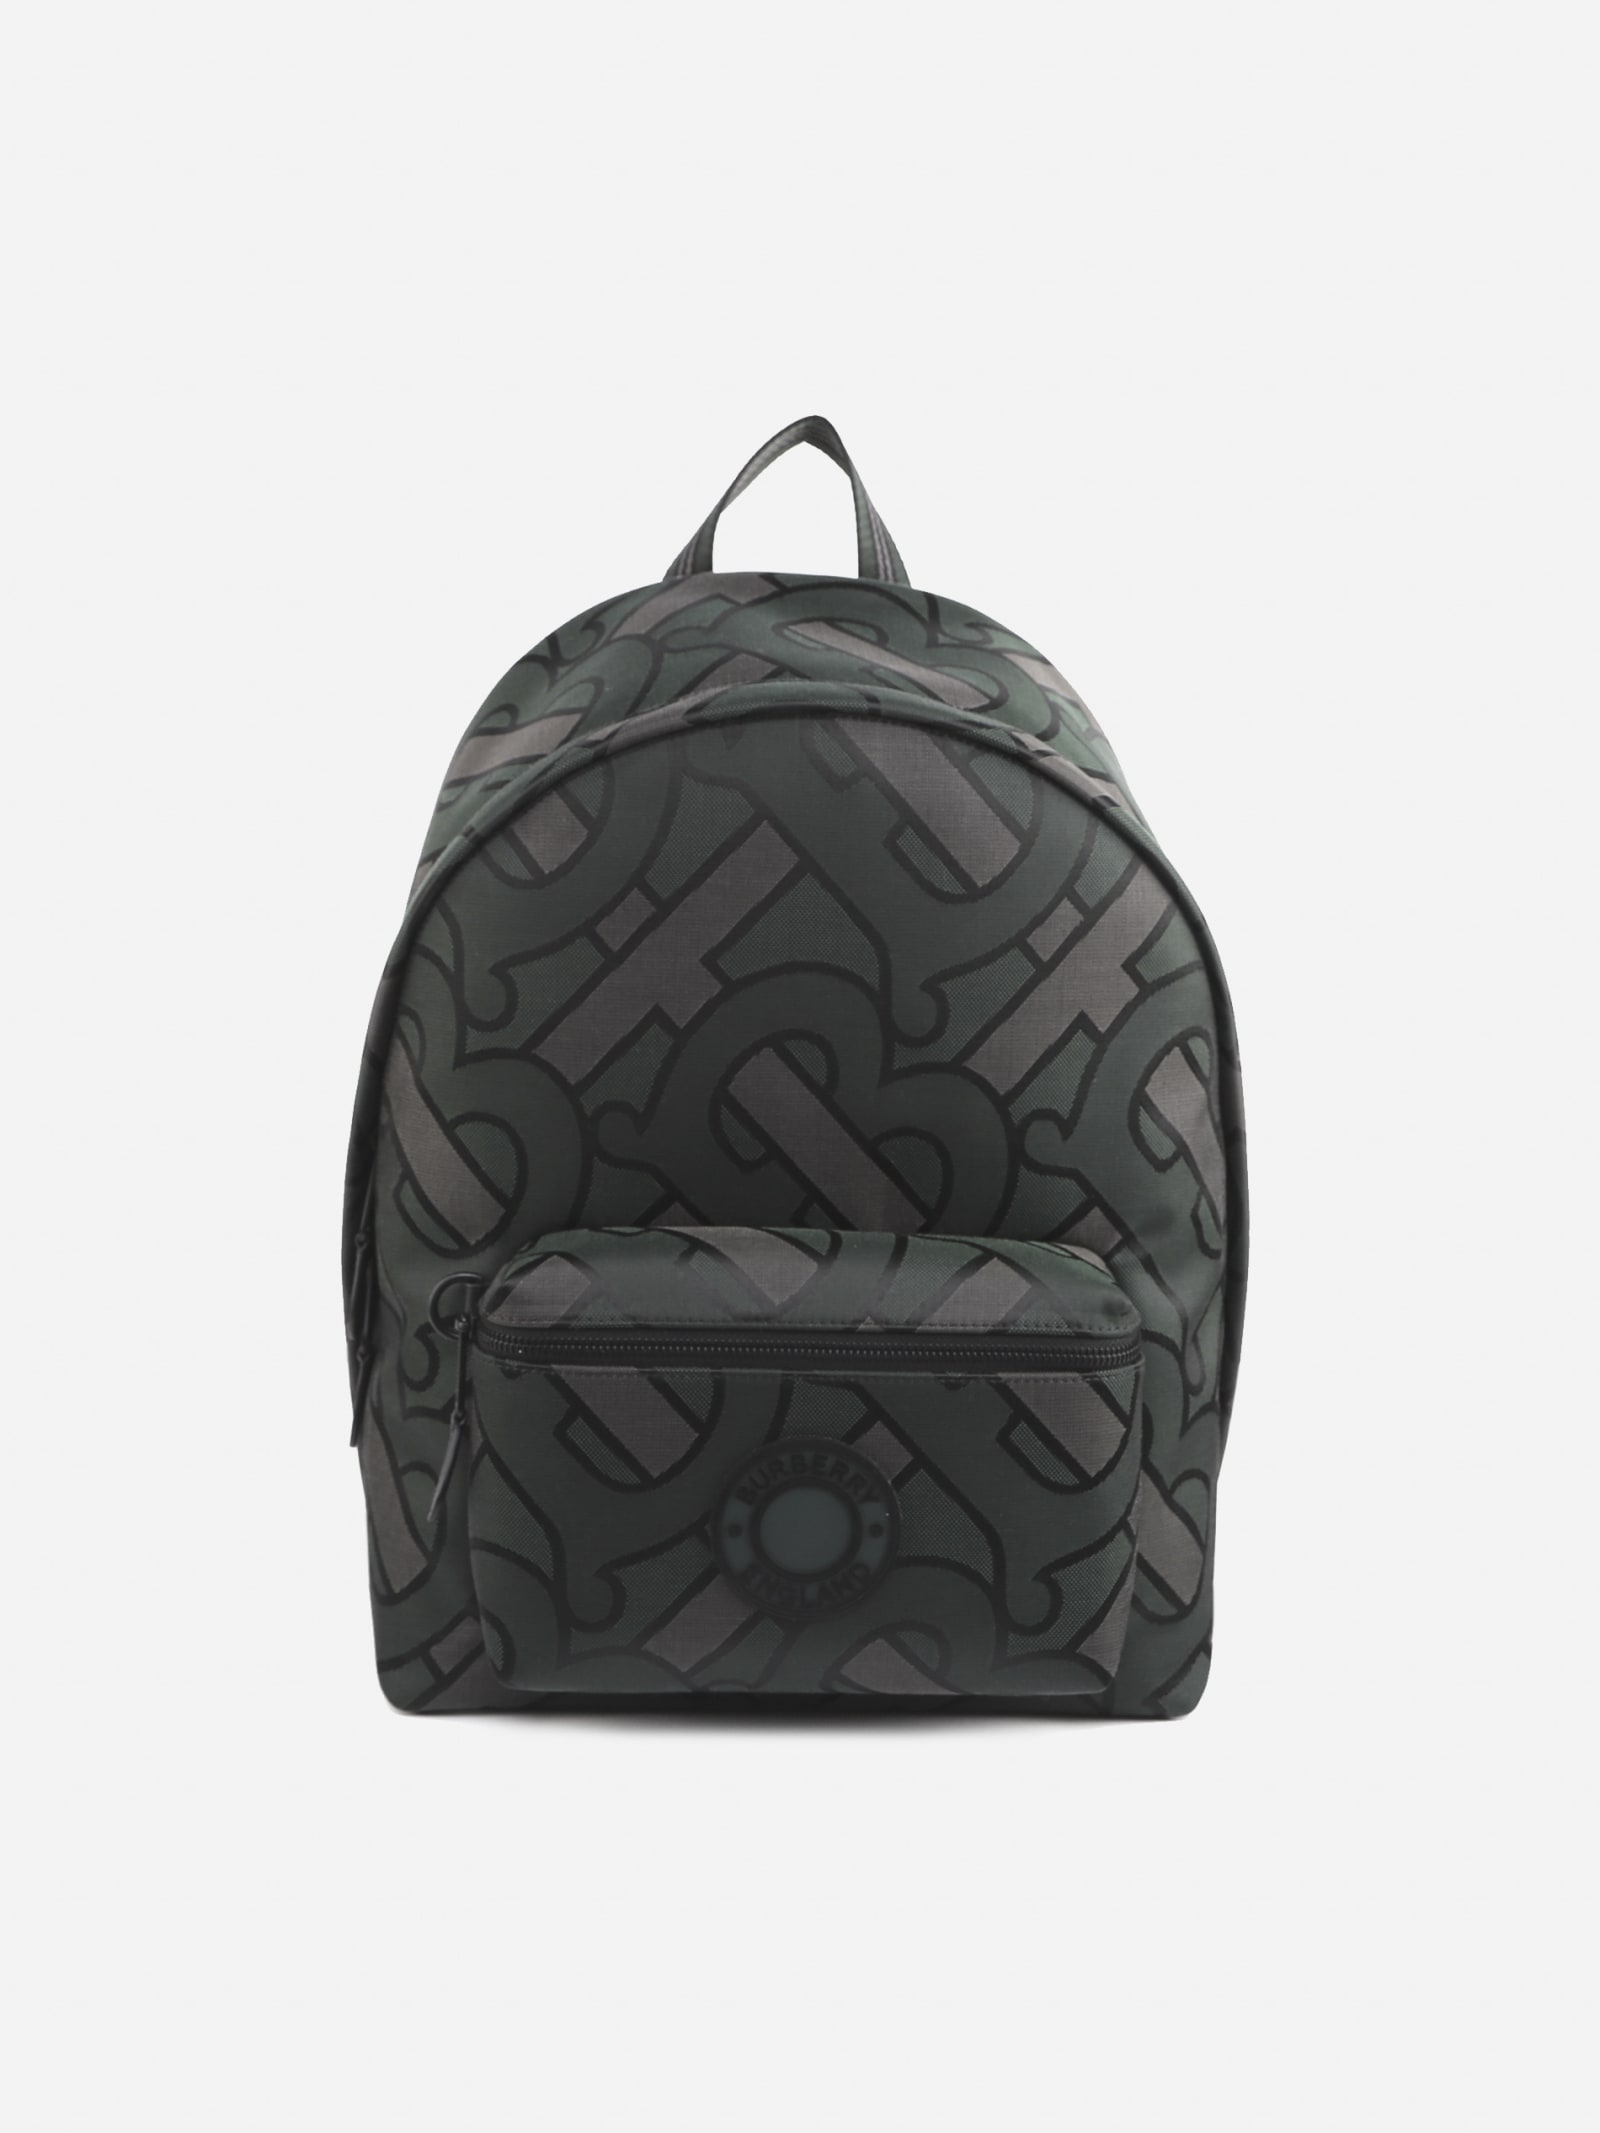 BURBERRY COTTON BLEND BACKPACK WITH JACQUARD MONOGRAM